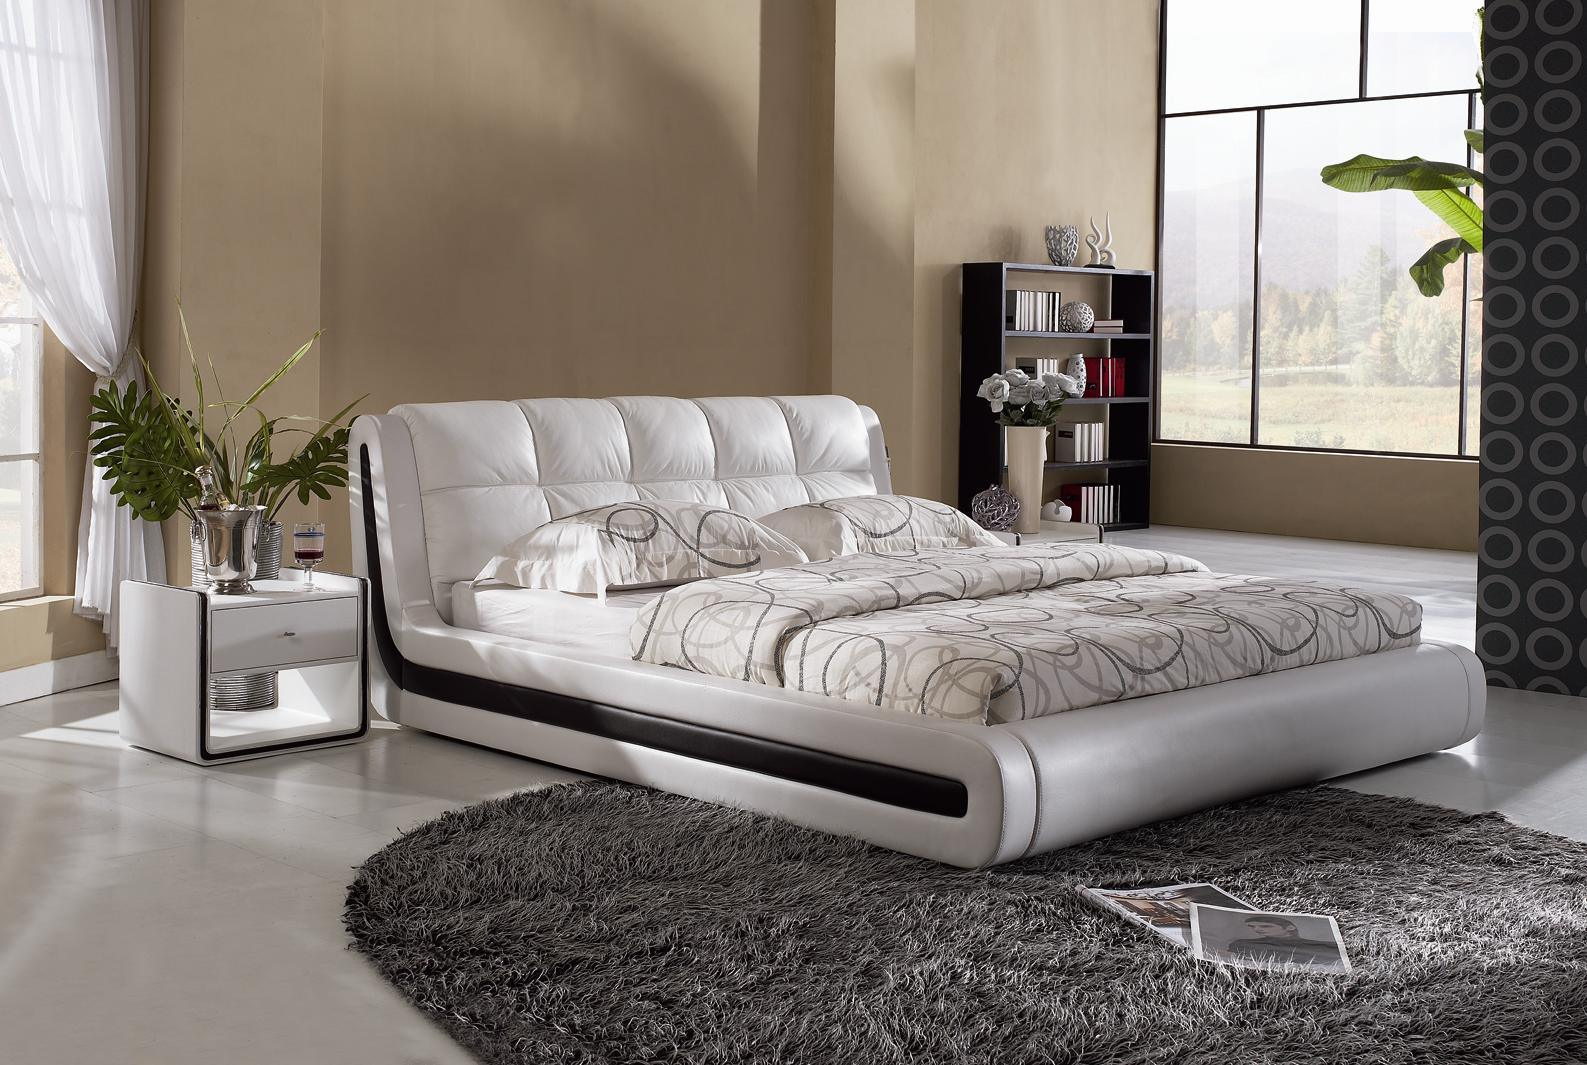 Modern beds design pictures simple home decoration for Modern bed designs